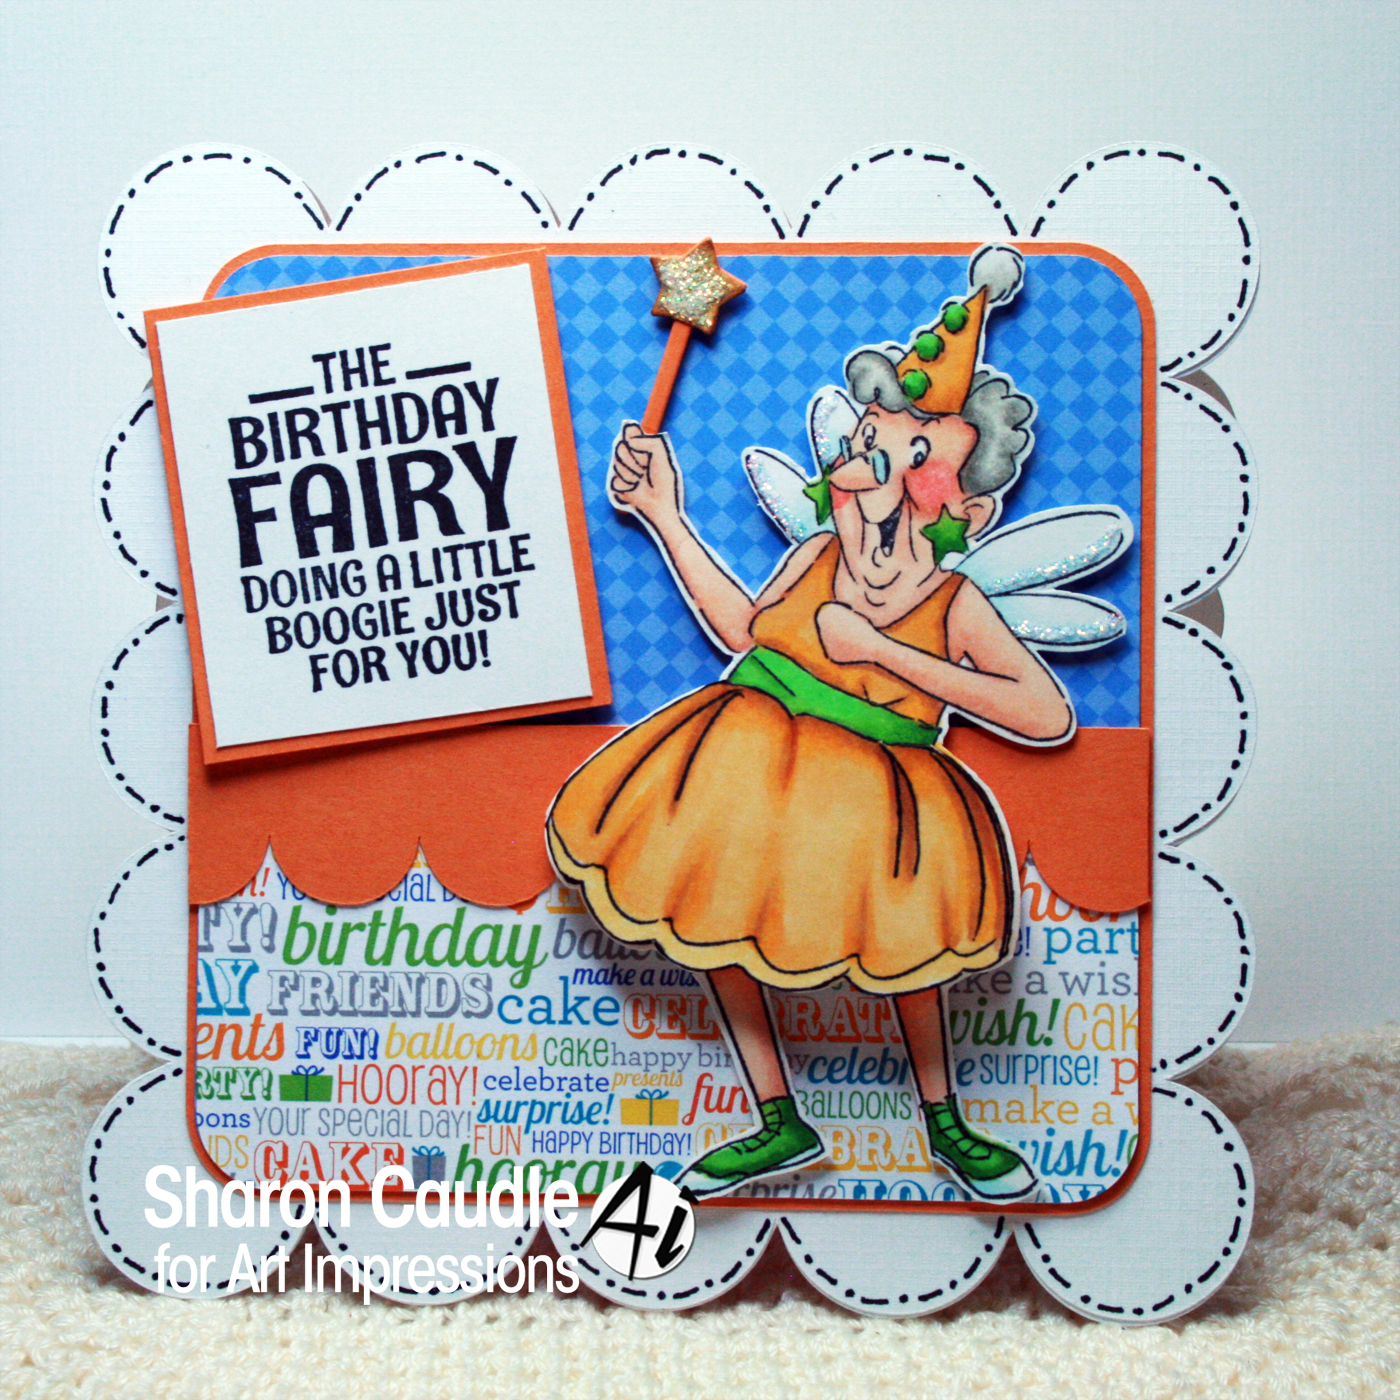 Birthday Fairy by Sharon Caudle